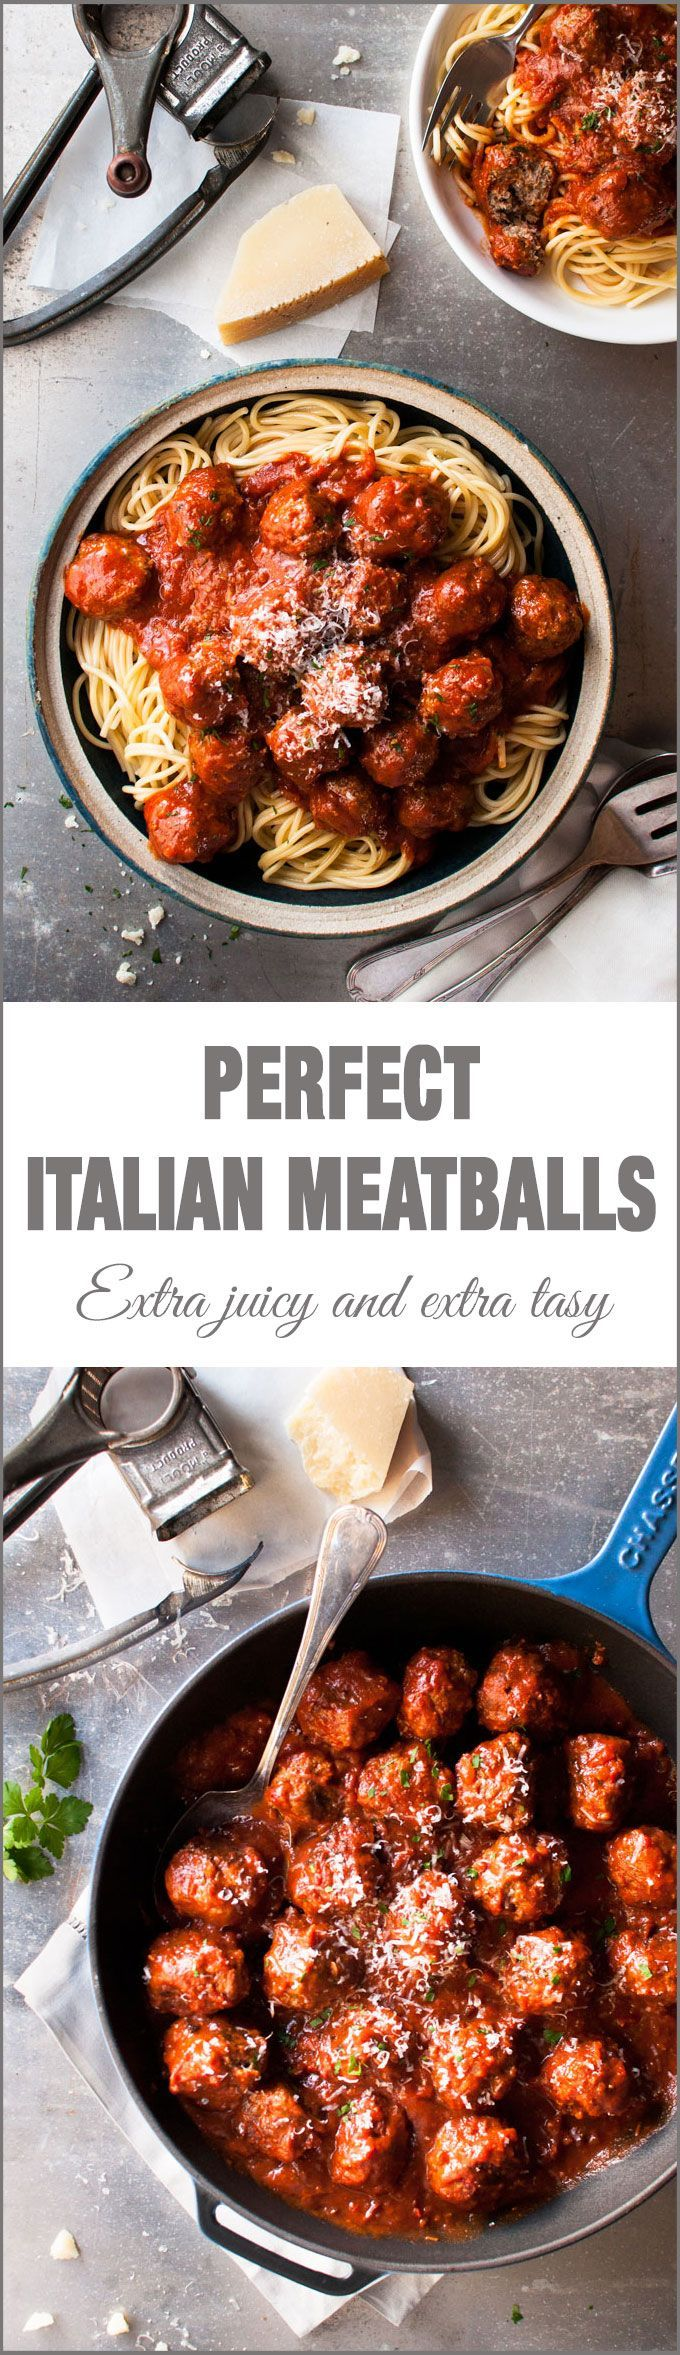 Classic Italian Meatballs - 2 little changes to the usual to make these extra soft, moist and with extra flavour! #healthy #easydinners #recipe